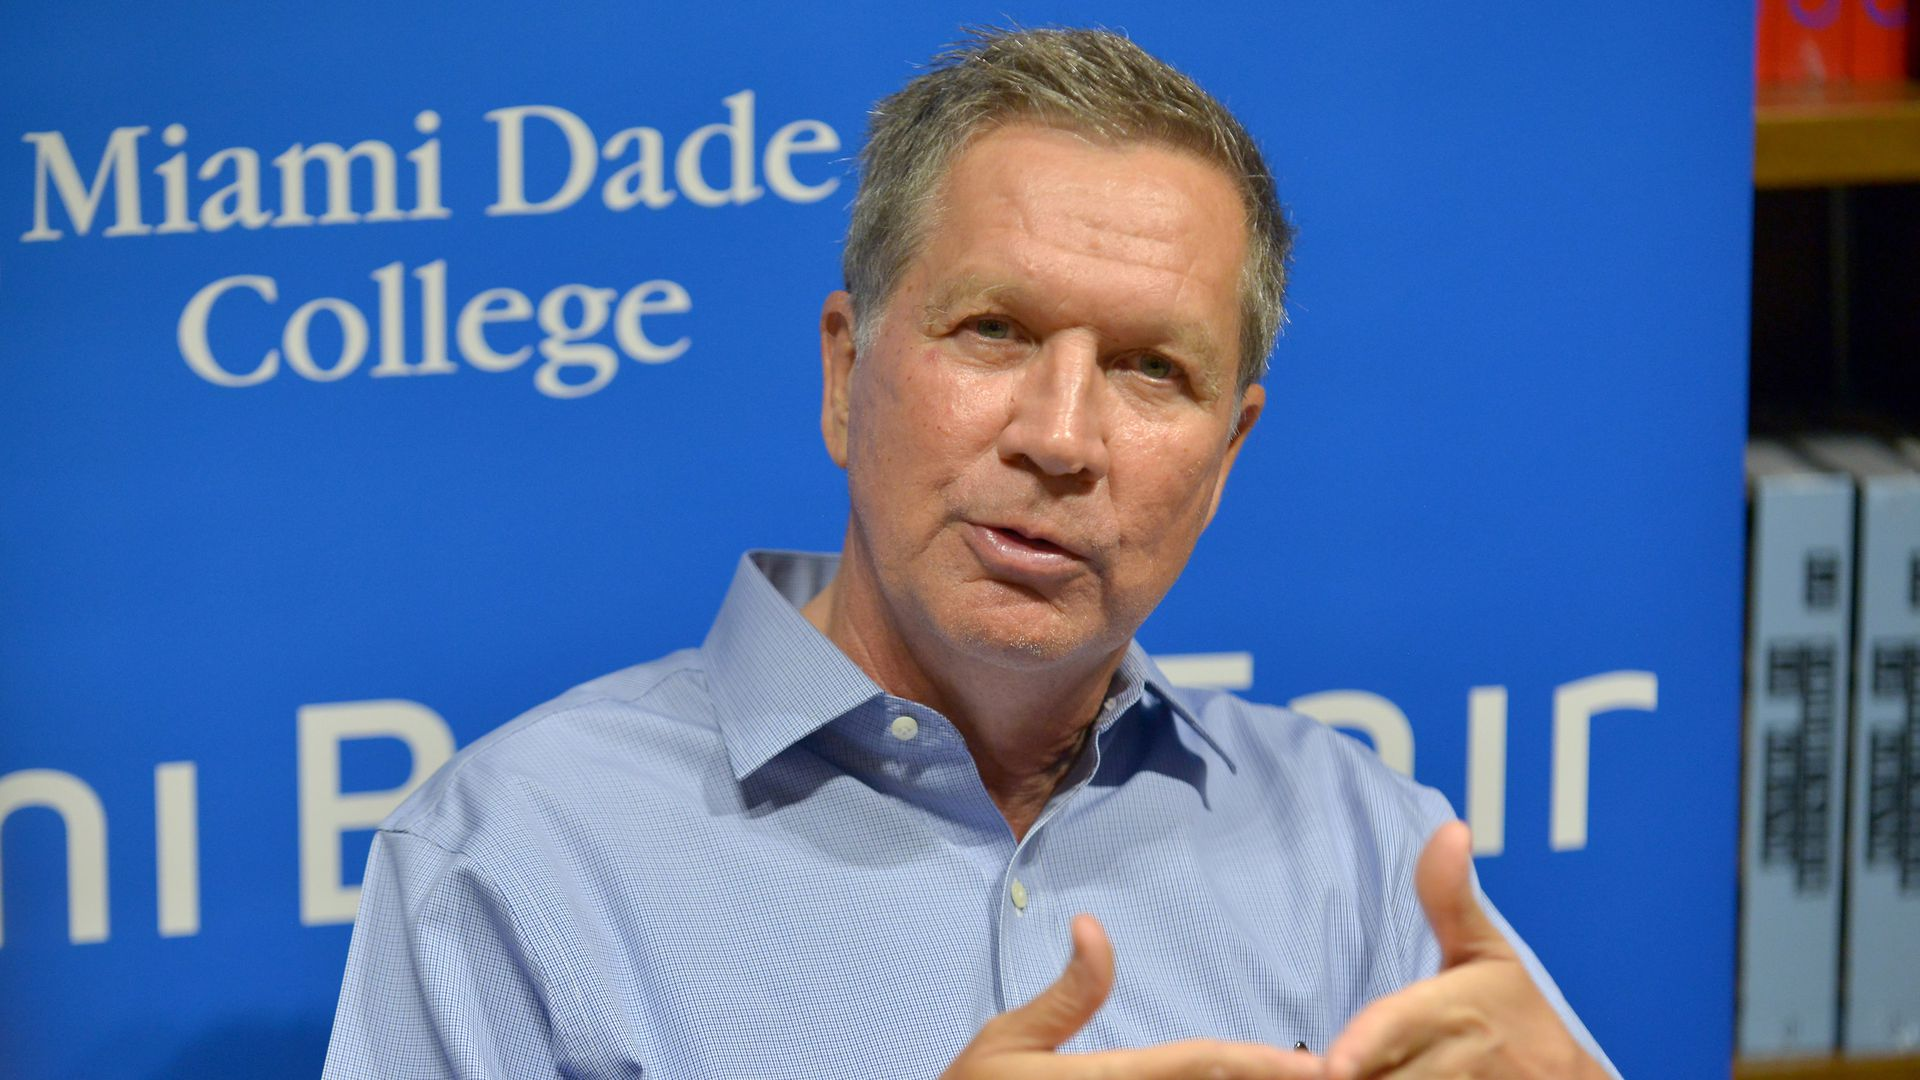 John Kasich speaks at a book signing